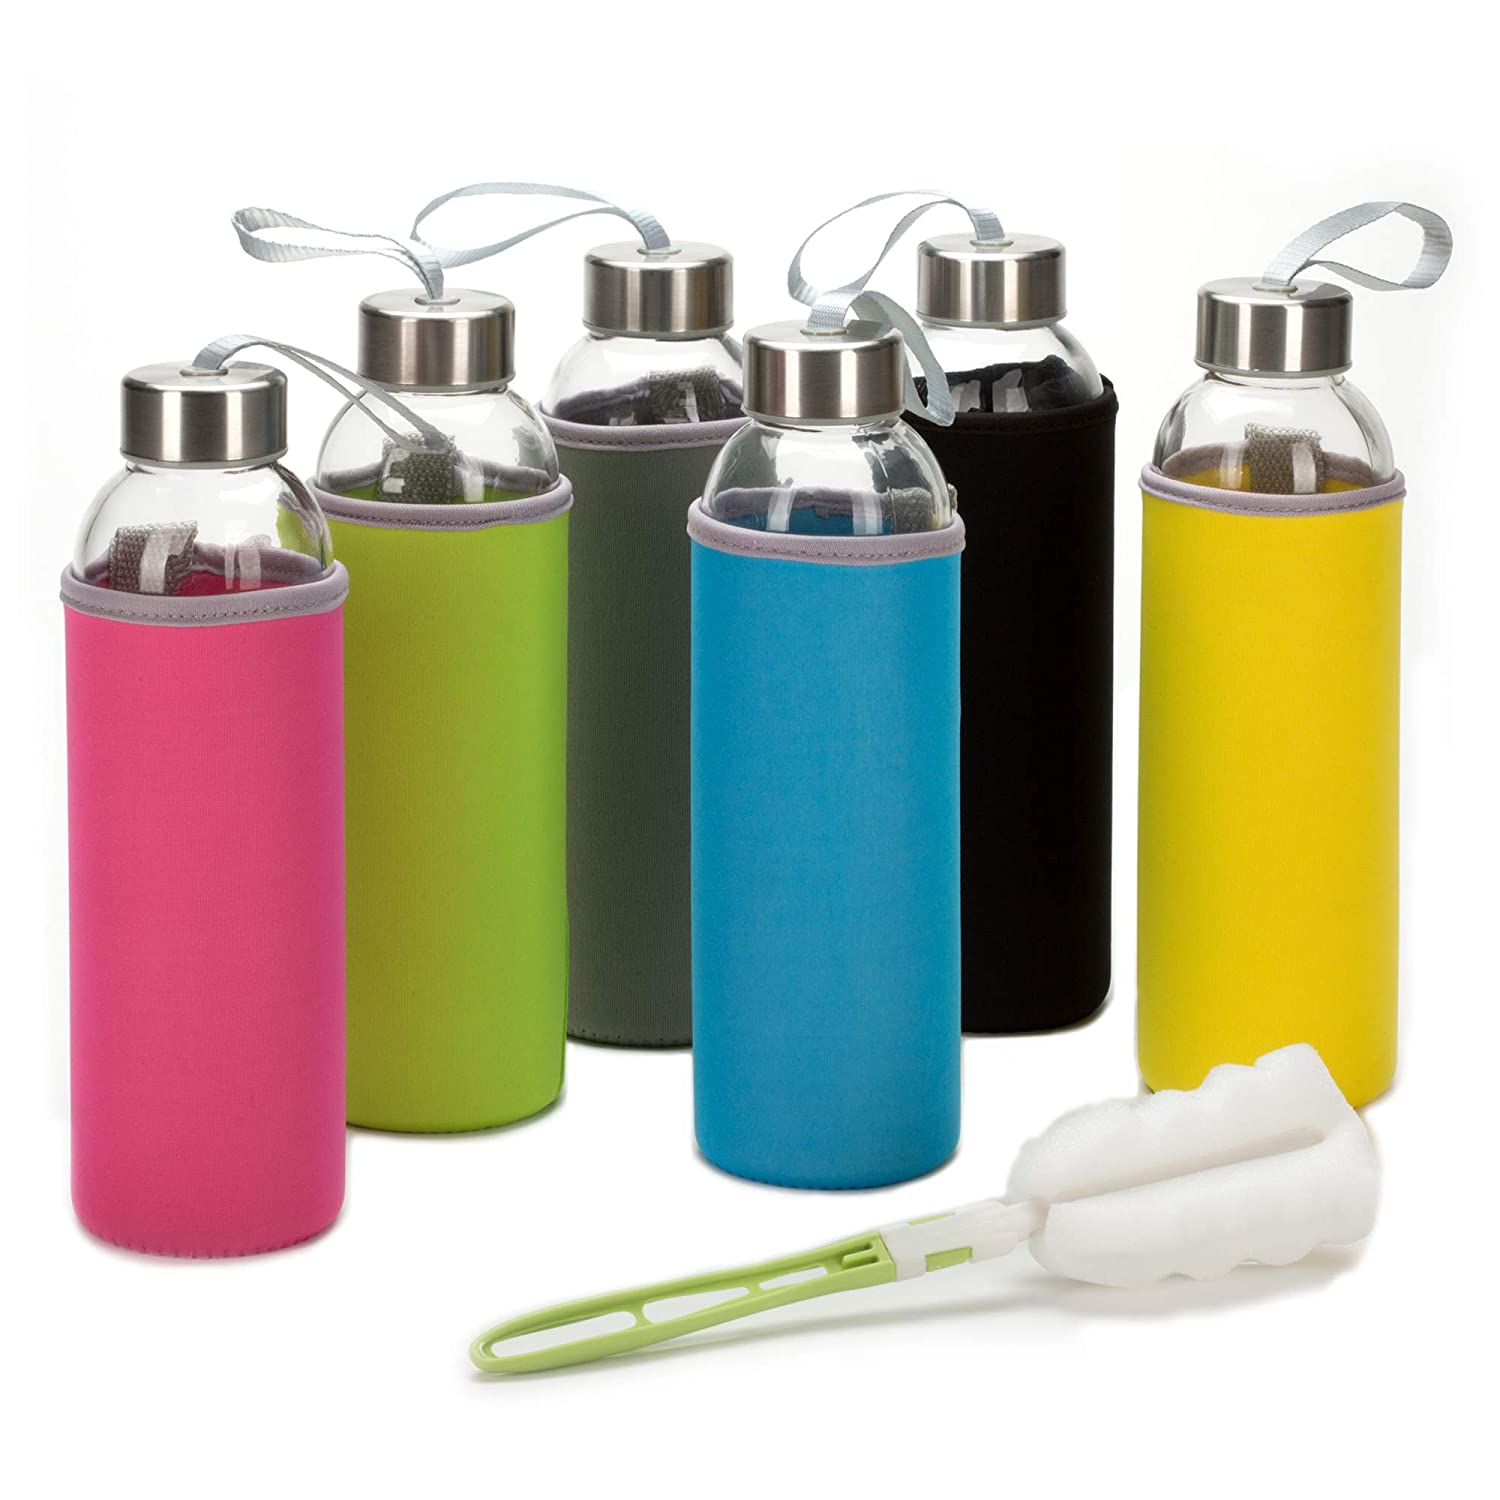 Glass Water Bottle 6 Pack 18oz Bottles for Beverages and Juicer Use Stainless Steel Leak Proof Caps with Carrying Loop - Including 6 Black Nylon Protection Sleeve and Soft Cleaning Brush